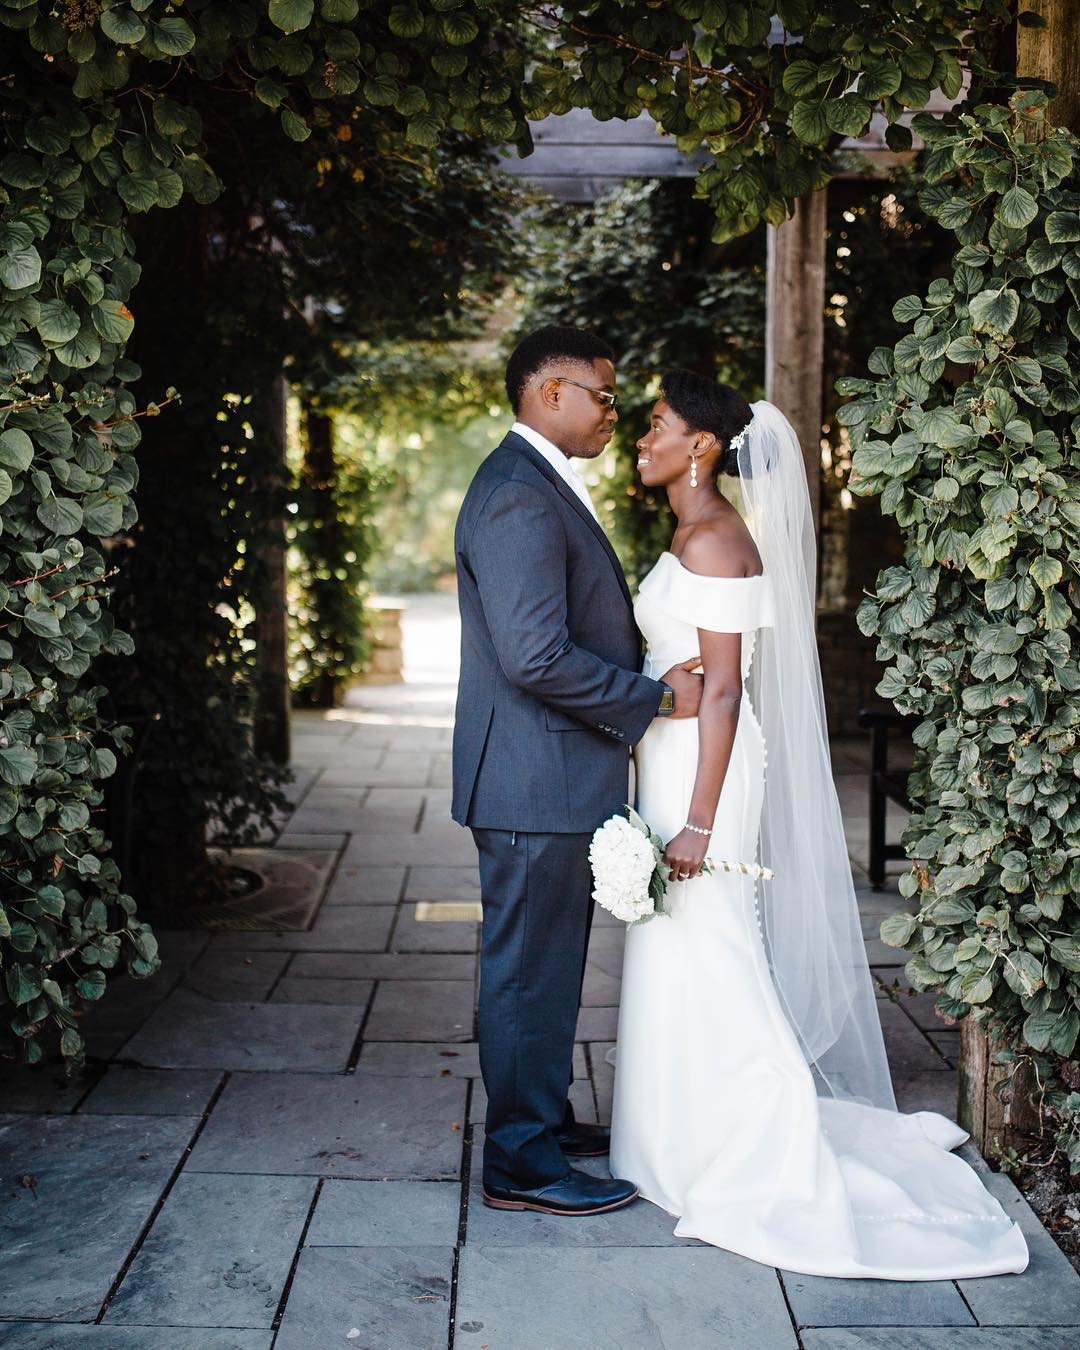 African American bride and groom standing under an archway covered in greenery.